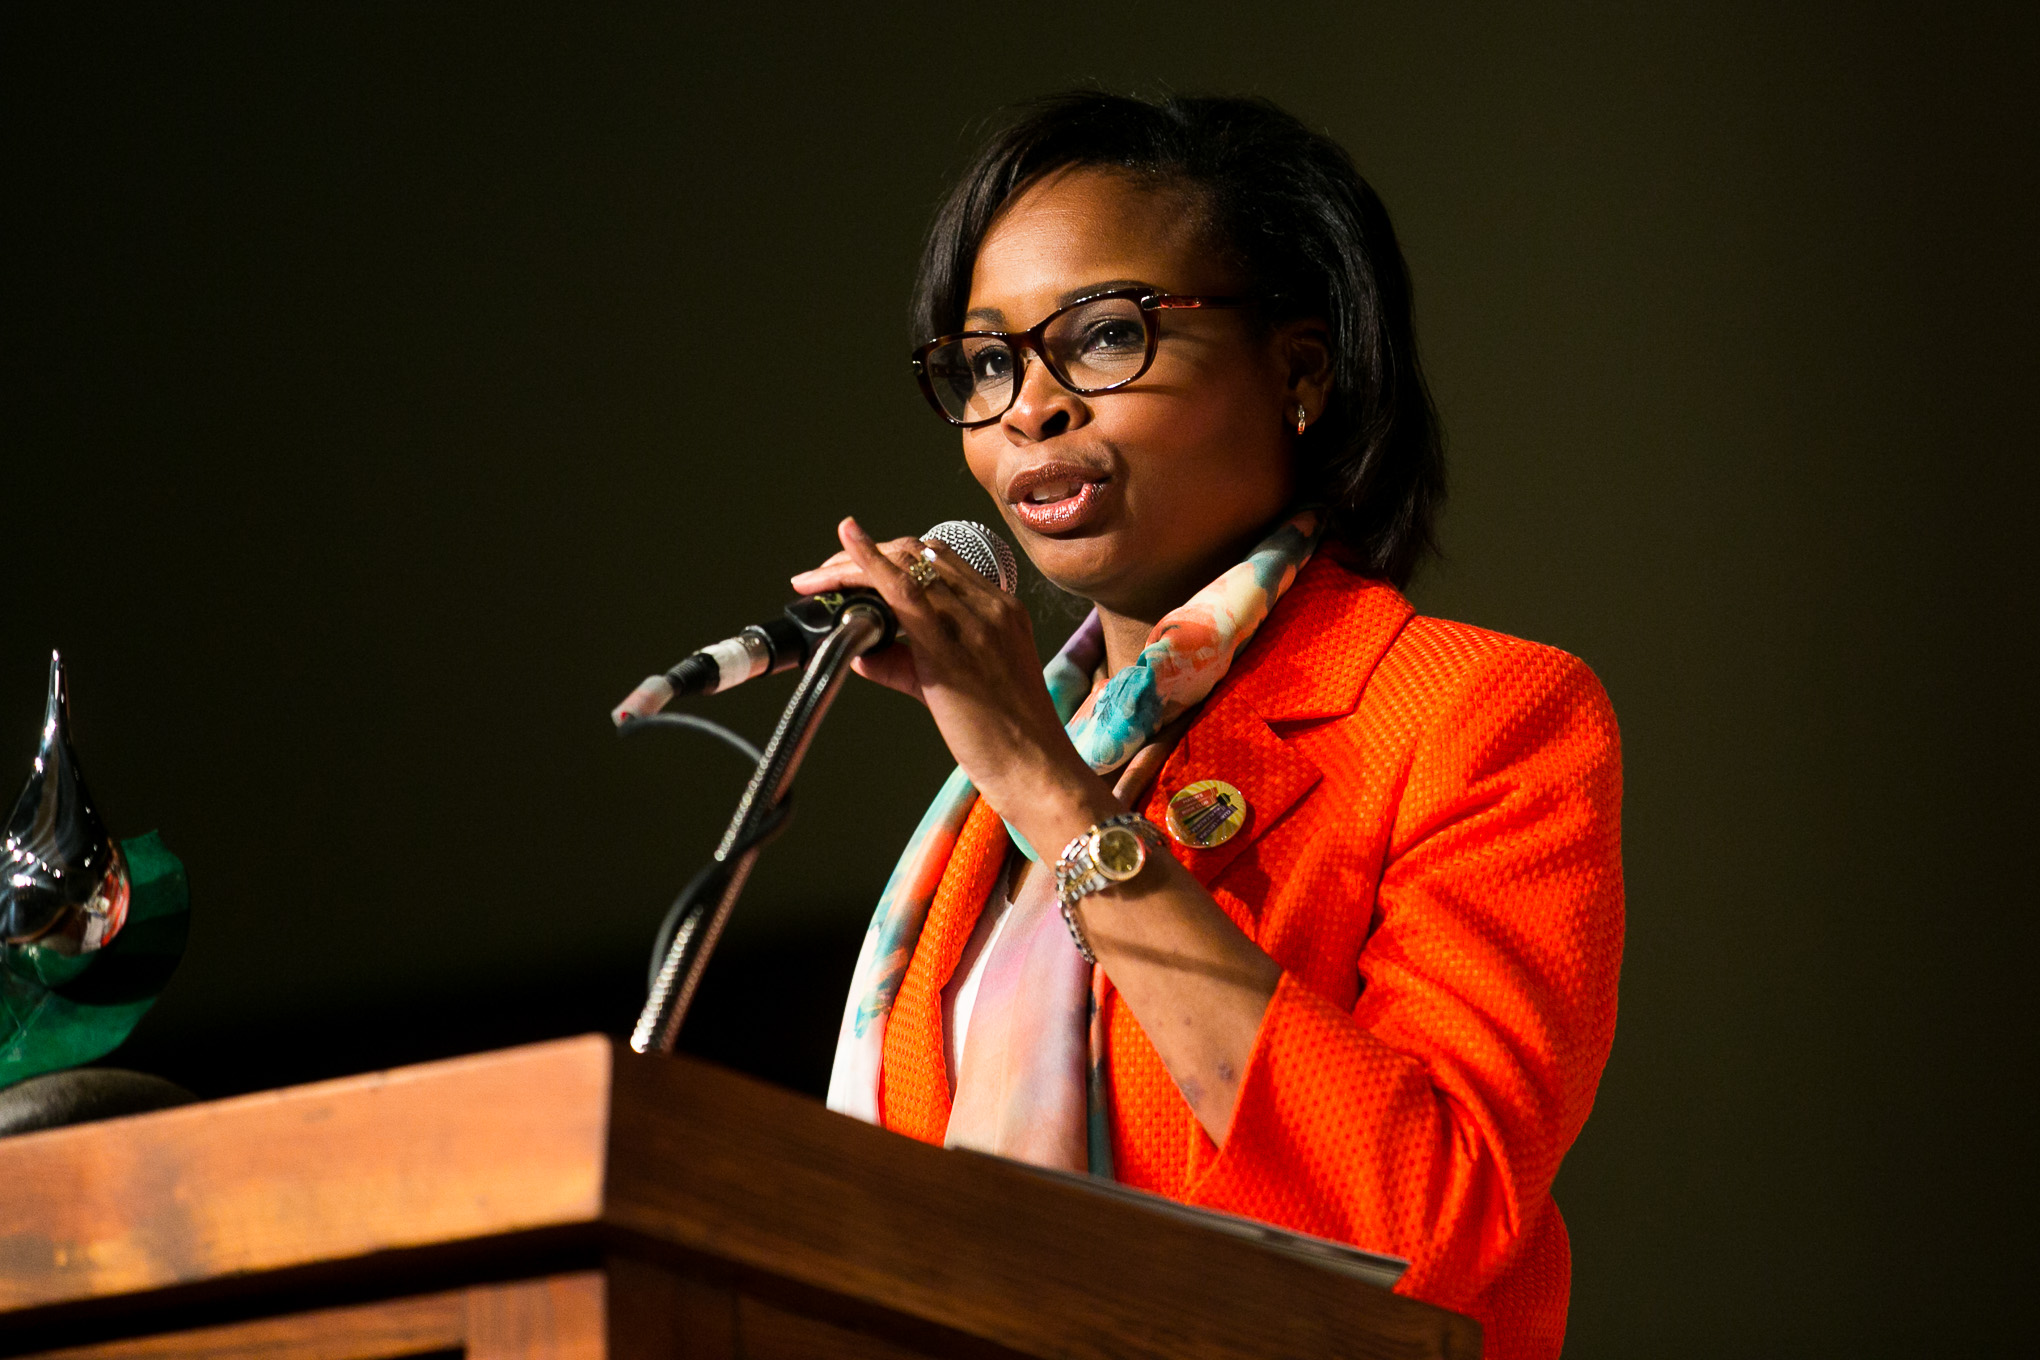 Mayor Ivy Taylor speaks about the importance of aquifer protection and water quality. Photo by Kathryn Boyd-Batstone.